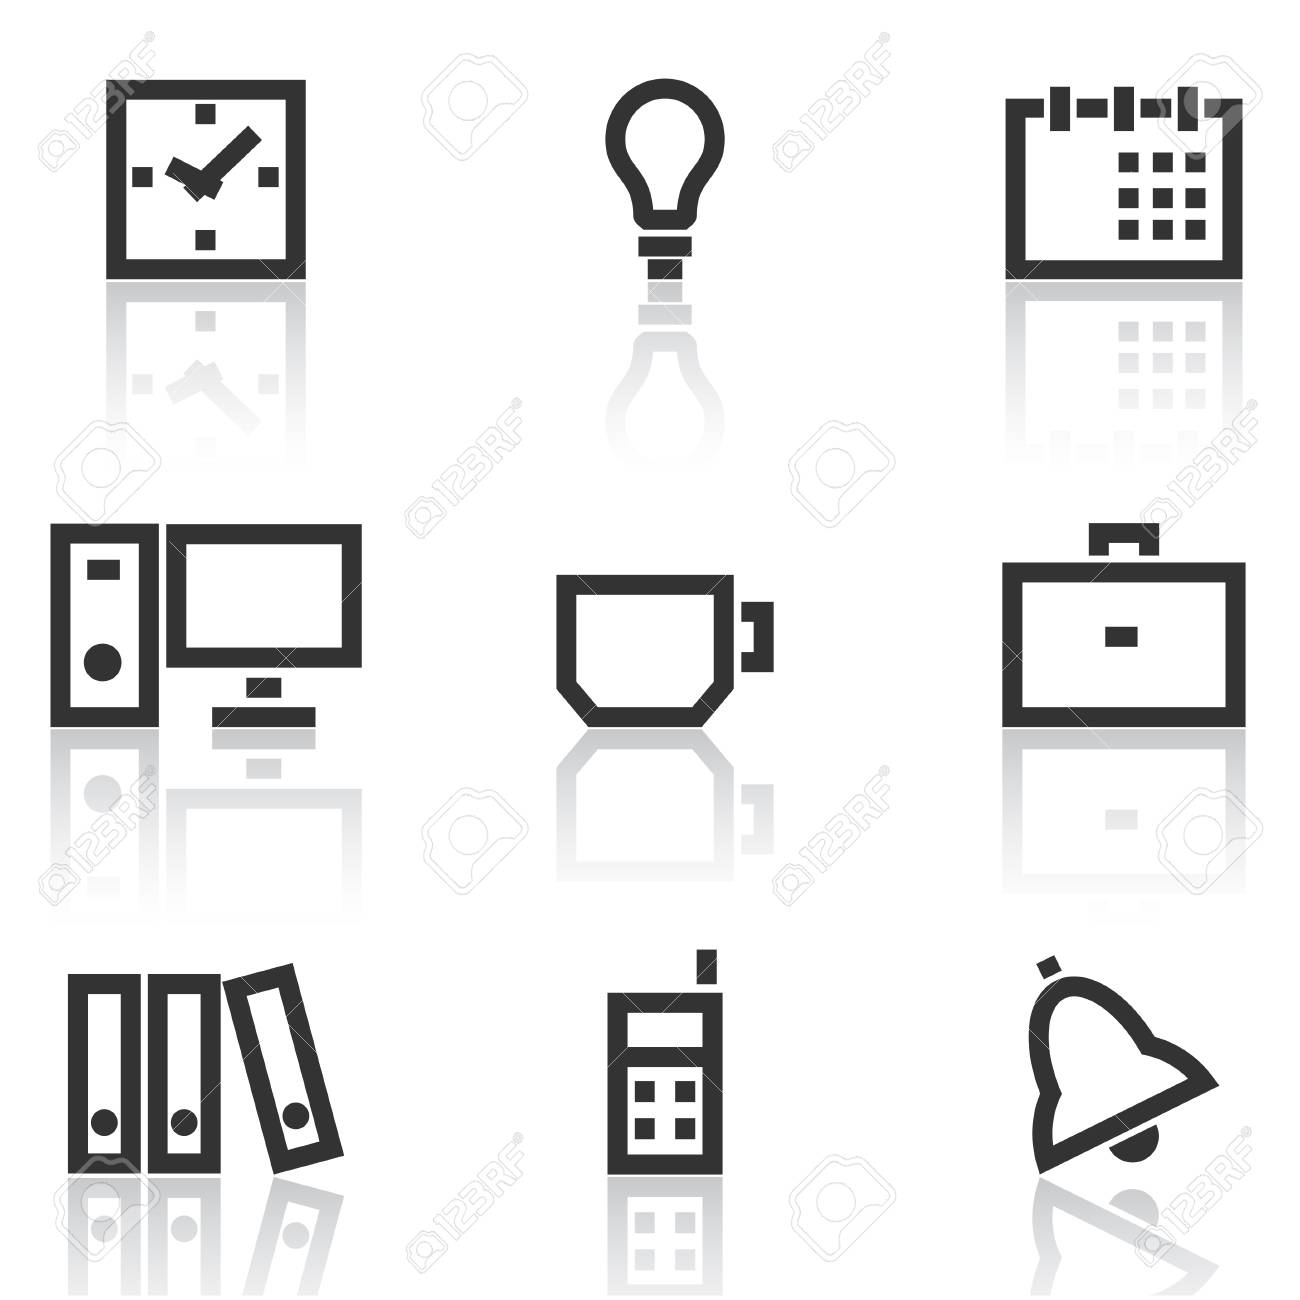 Office icons simple series Stock Vector - 6113236